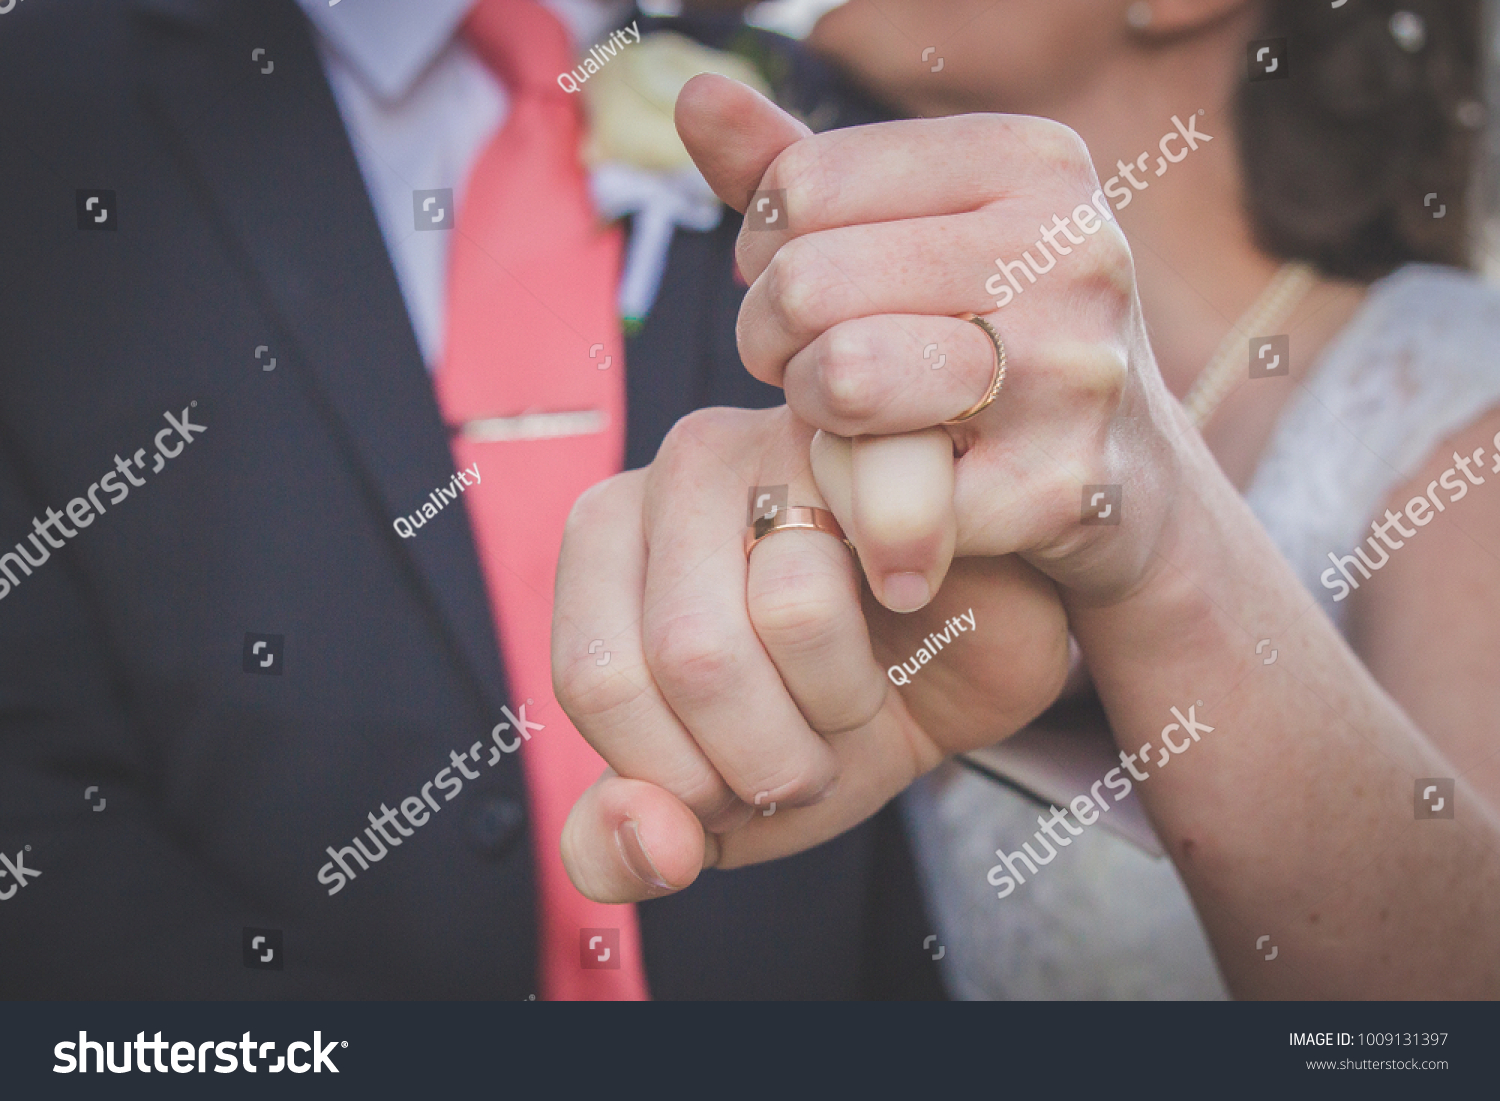 Bride Groom Wedding Couple Holding Hands Stock Photo & Image ...